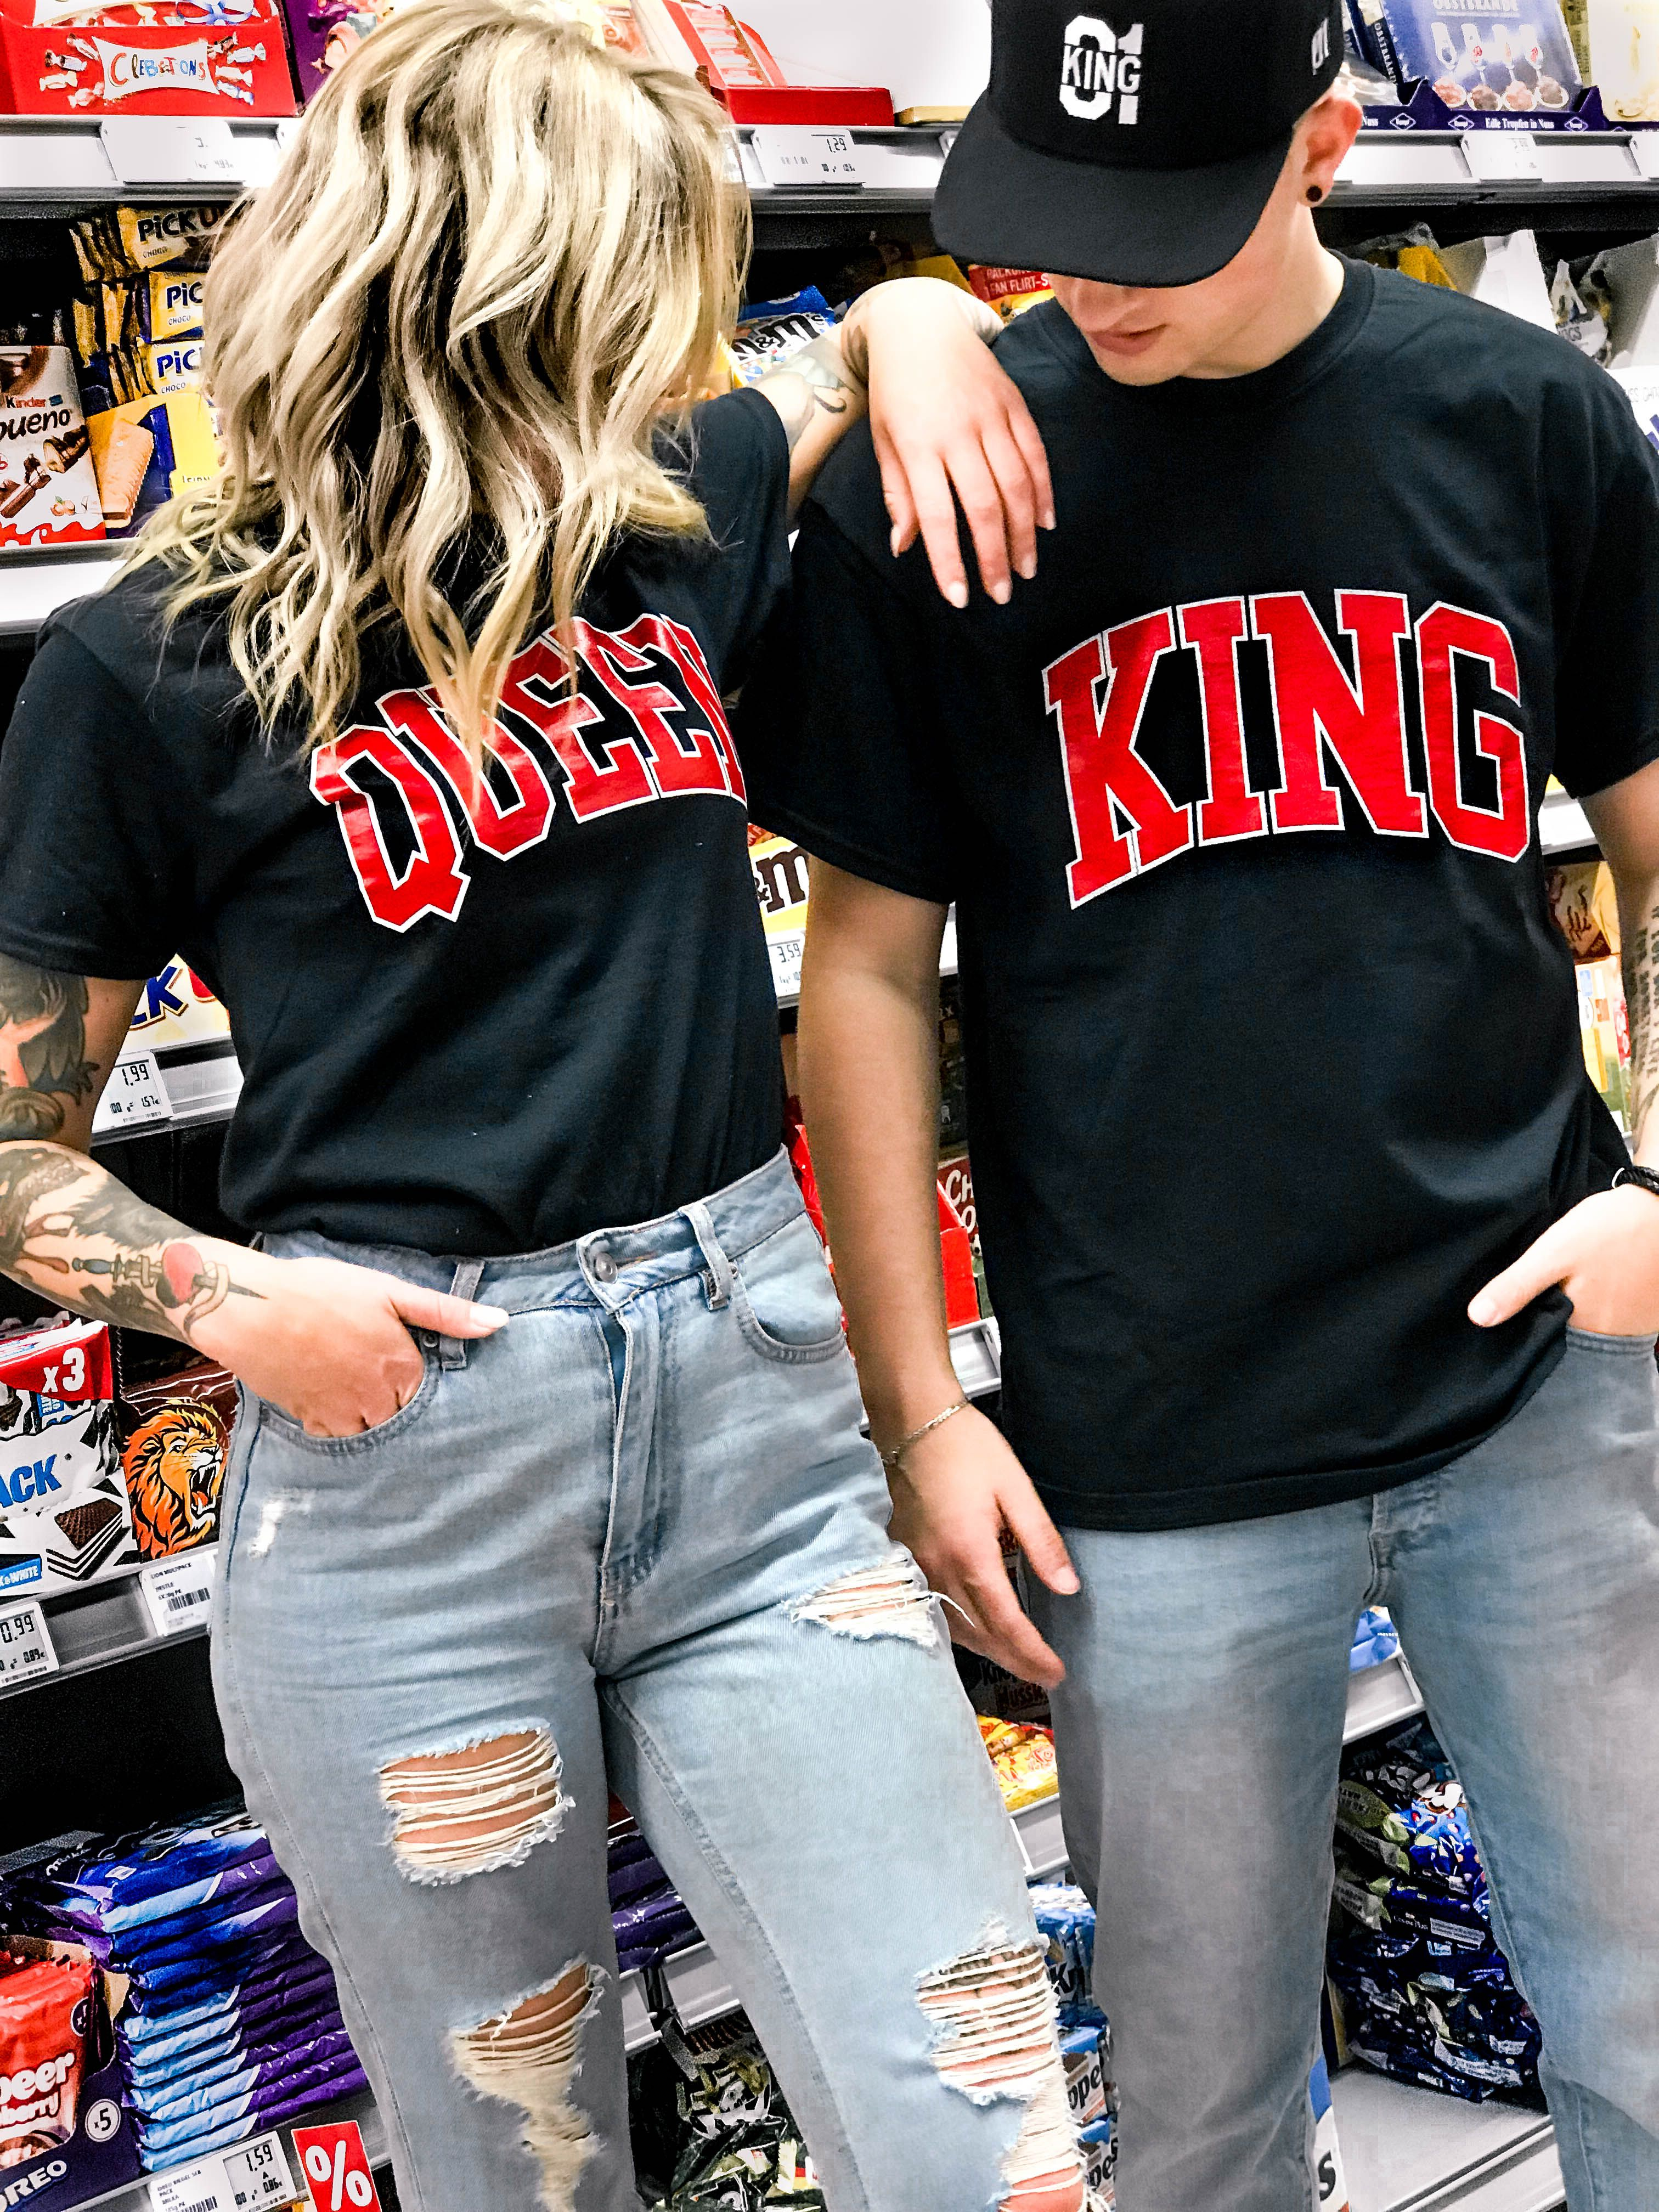 2b67dc104 couple goals, couple style, relationship goals, couplegoals, partner style,  partner fashion, king and Queen, partner T-shirts, love, relationship, king  und ...